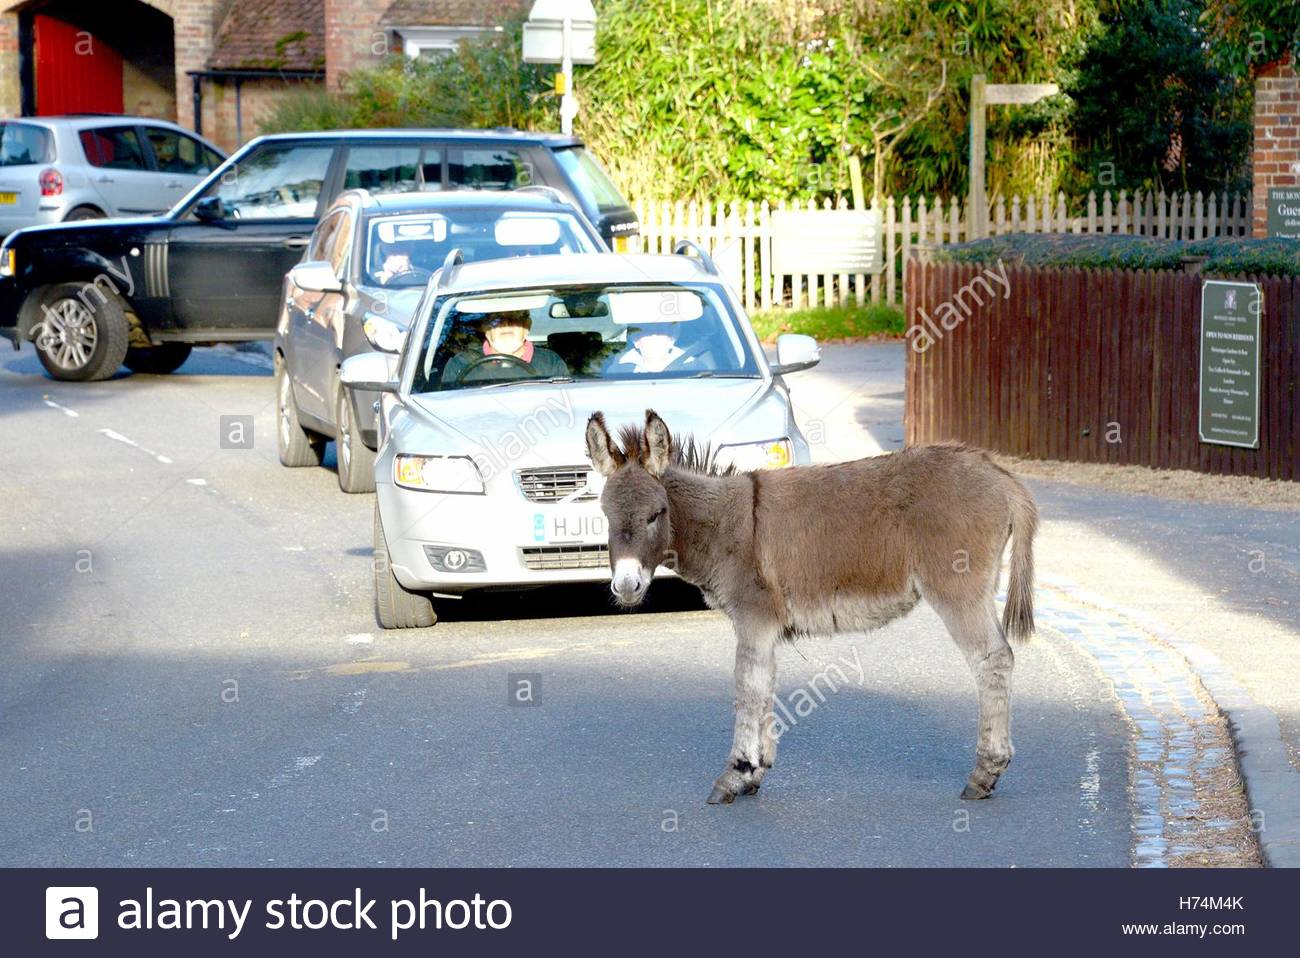 Donkeys and cattle freely wander the picturesque village of Beaulieu in the New Forest, Hampshire. - Stock Image